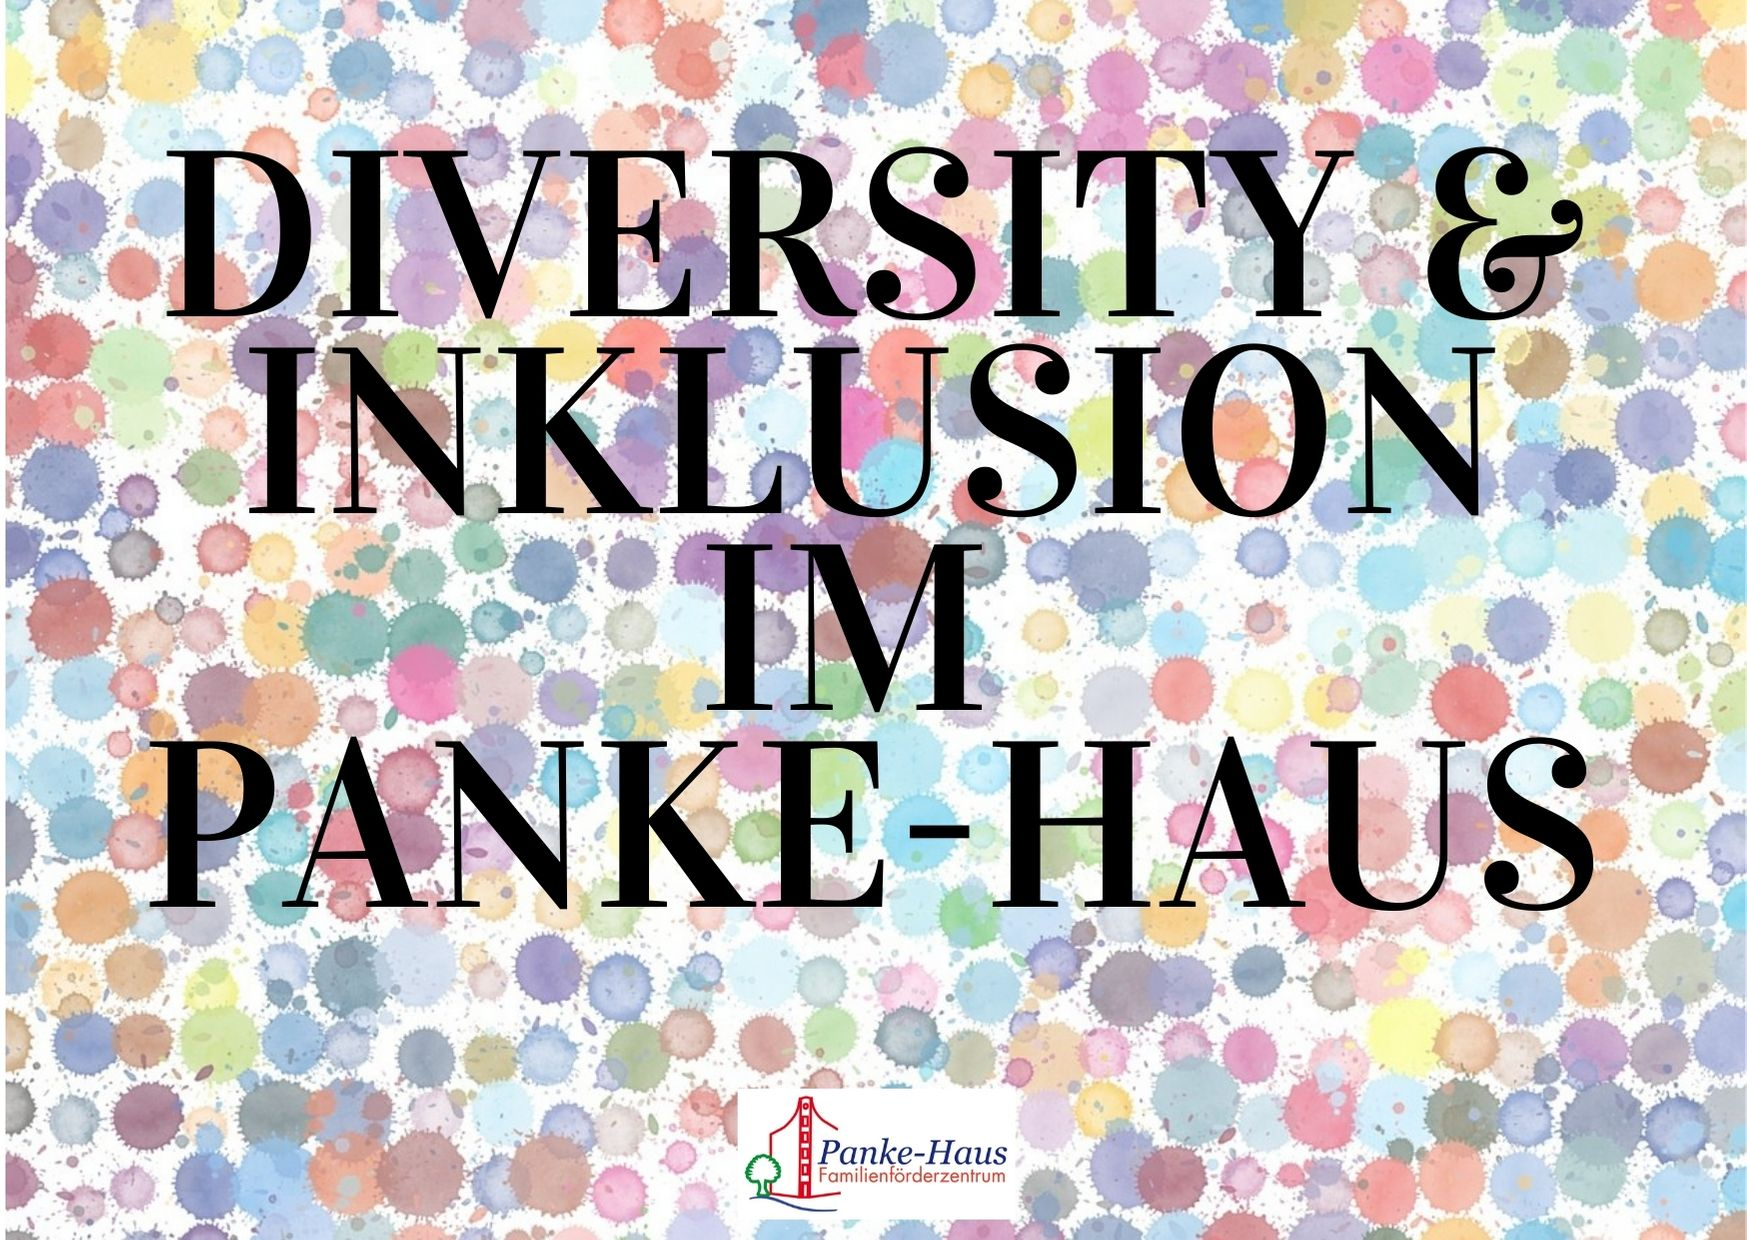 Diversity Inklusion